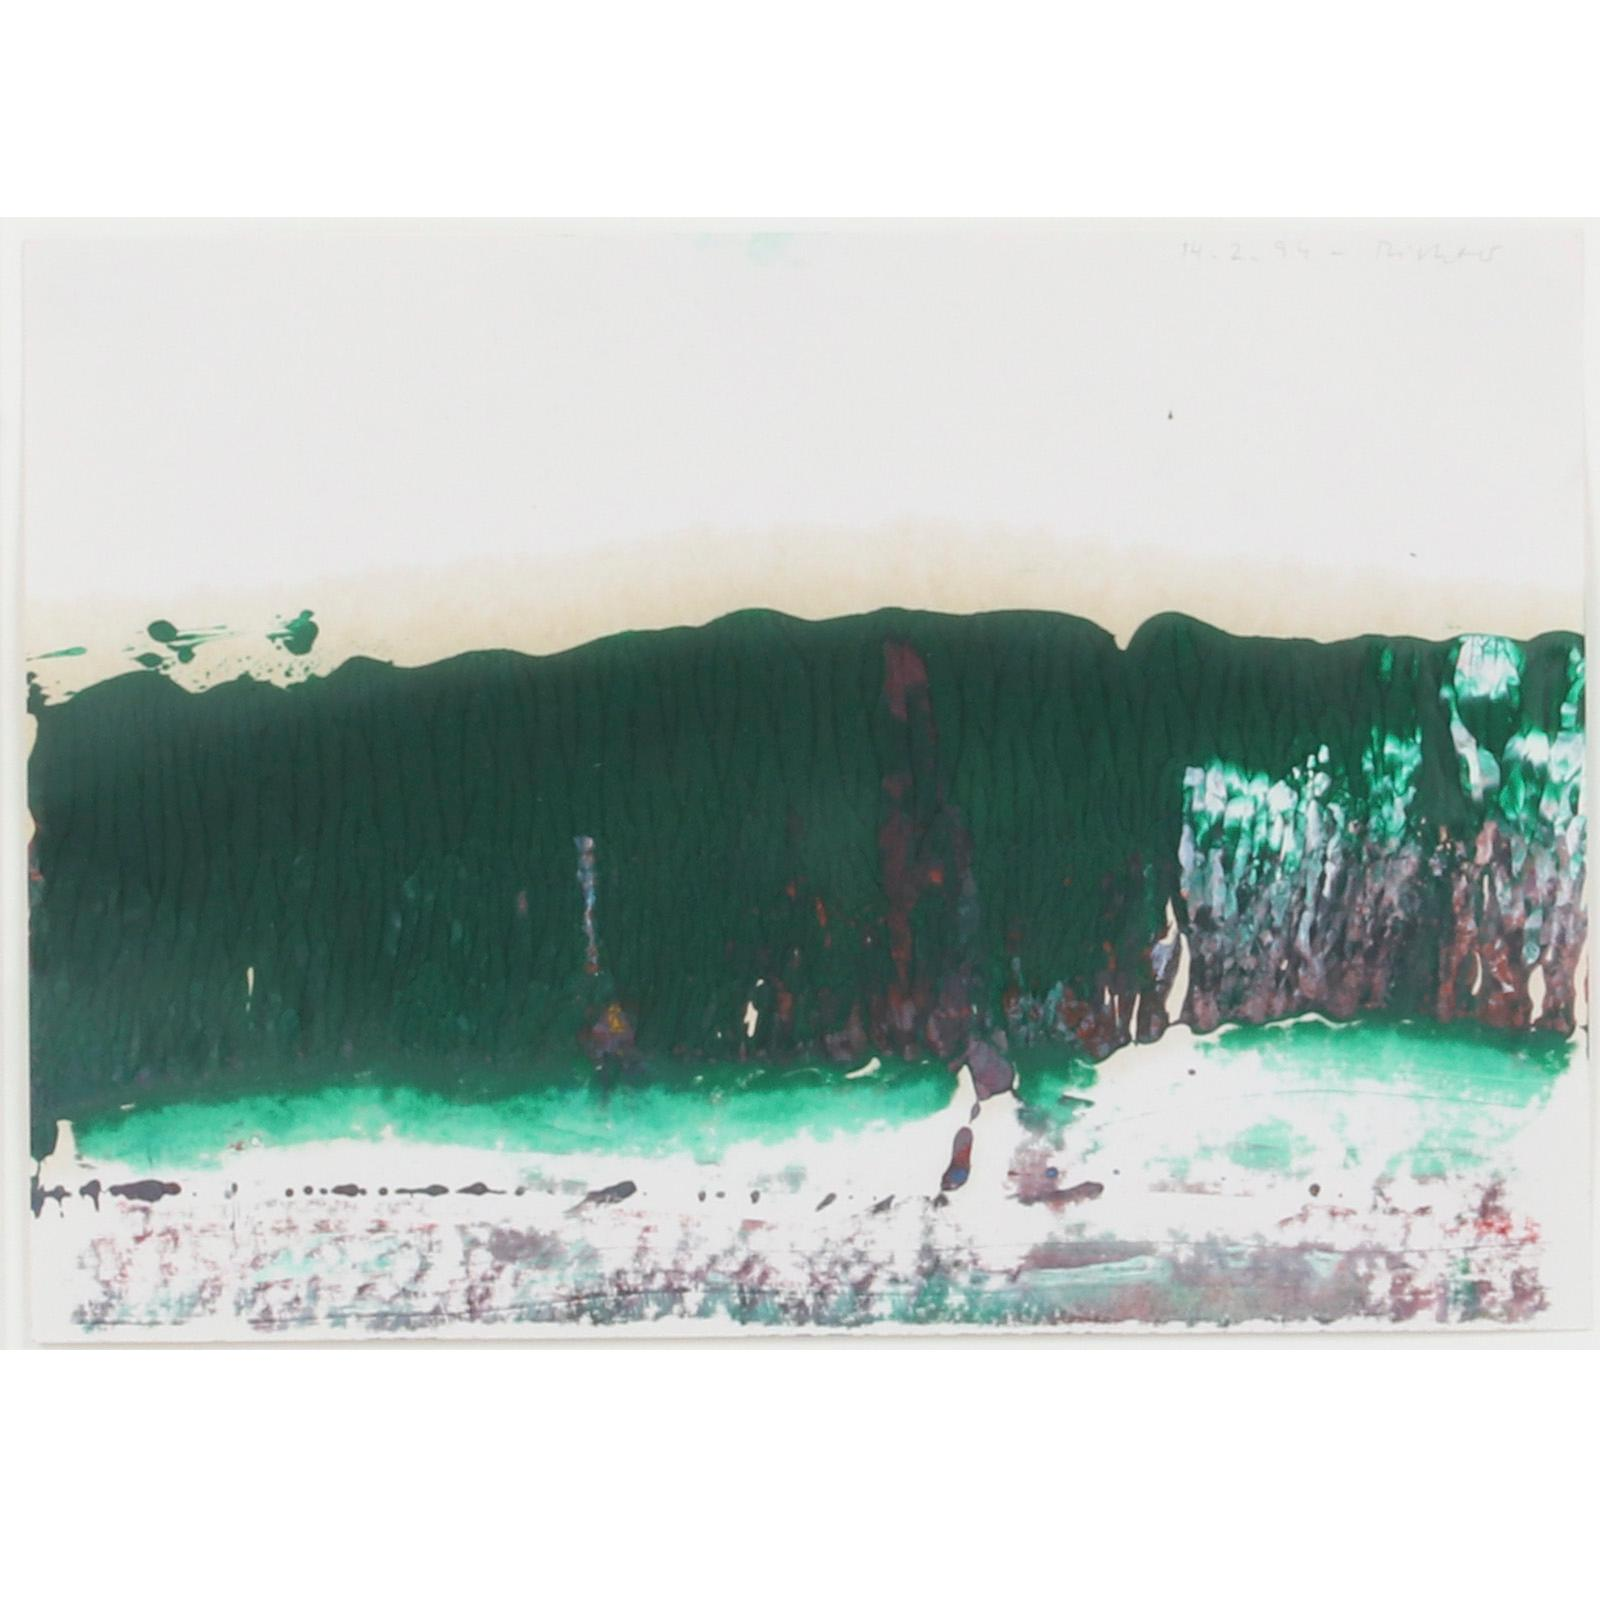 "Gerhard Richter, (German, b.1932), Untitled, 14.2.1994, oil on paper, 8 1/4""H x 11 1/2"" W (sheet), 16 1/4"" x 19 3/4"" (frame)."